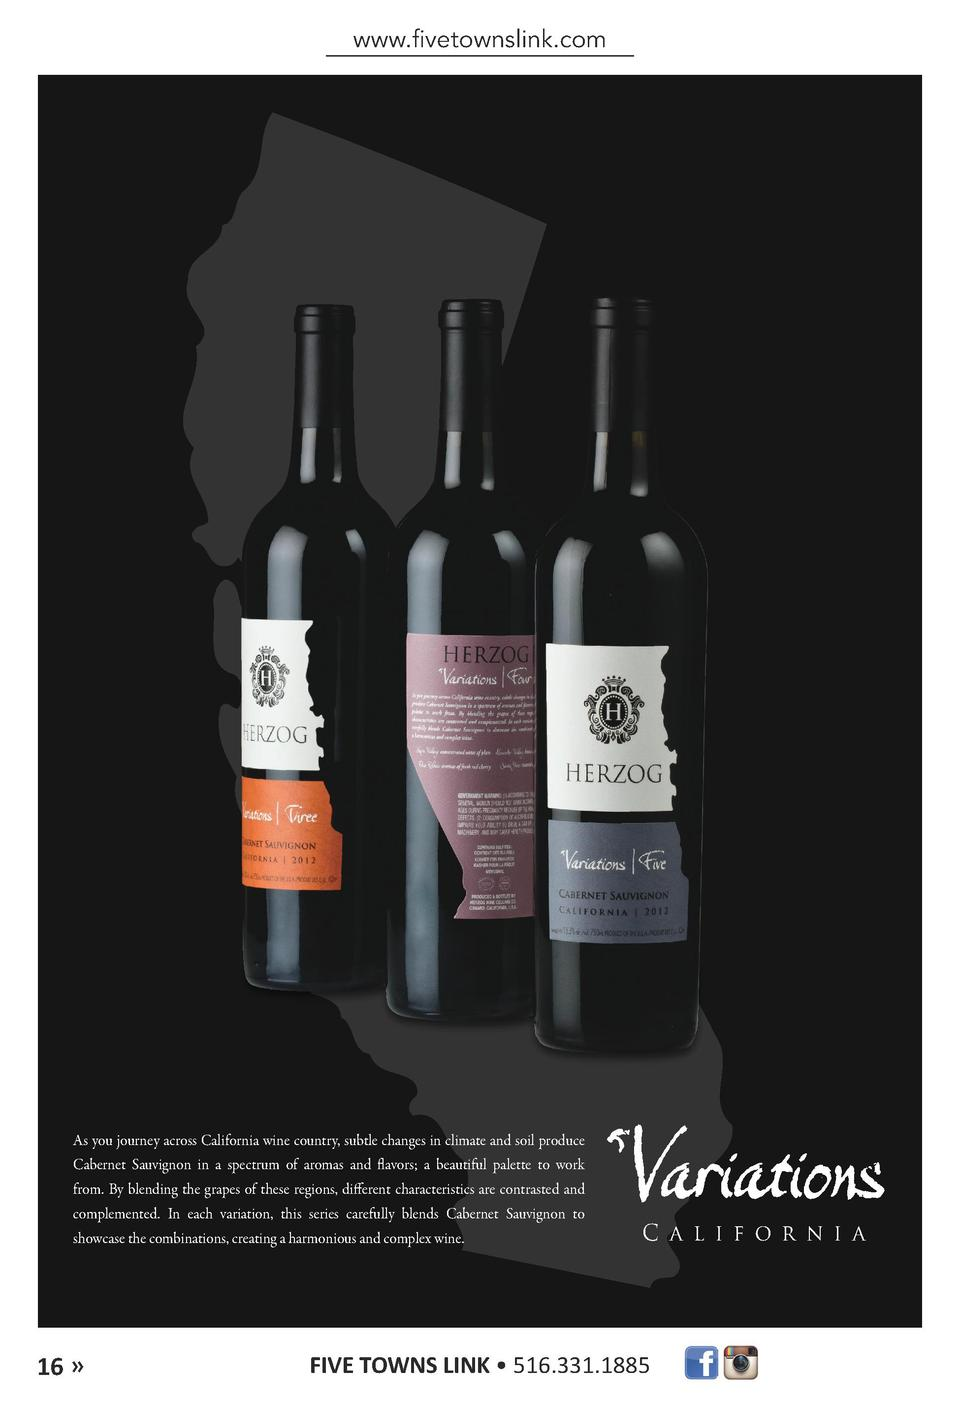 www.fivetownslink.com  As you journey across California wine country, subtle changes in climate and soil produce Cabernet ...